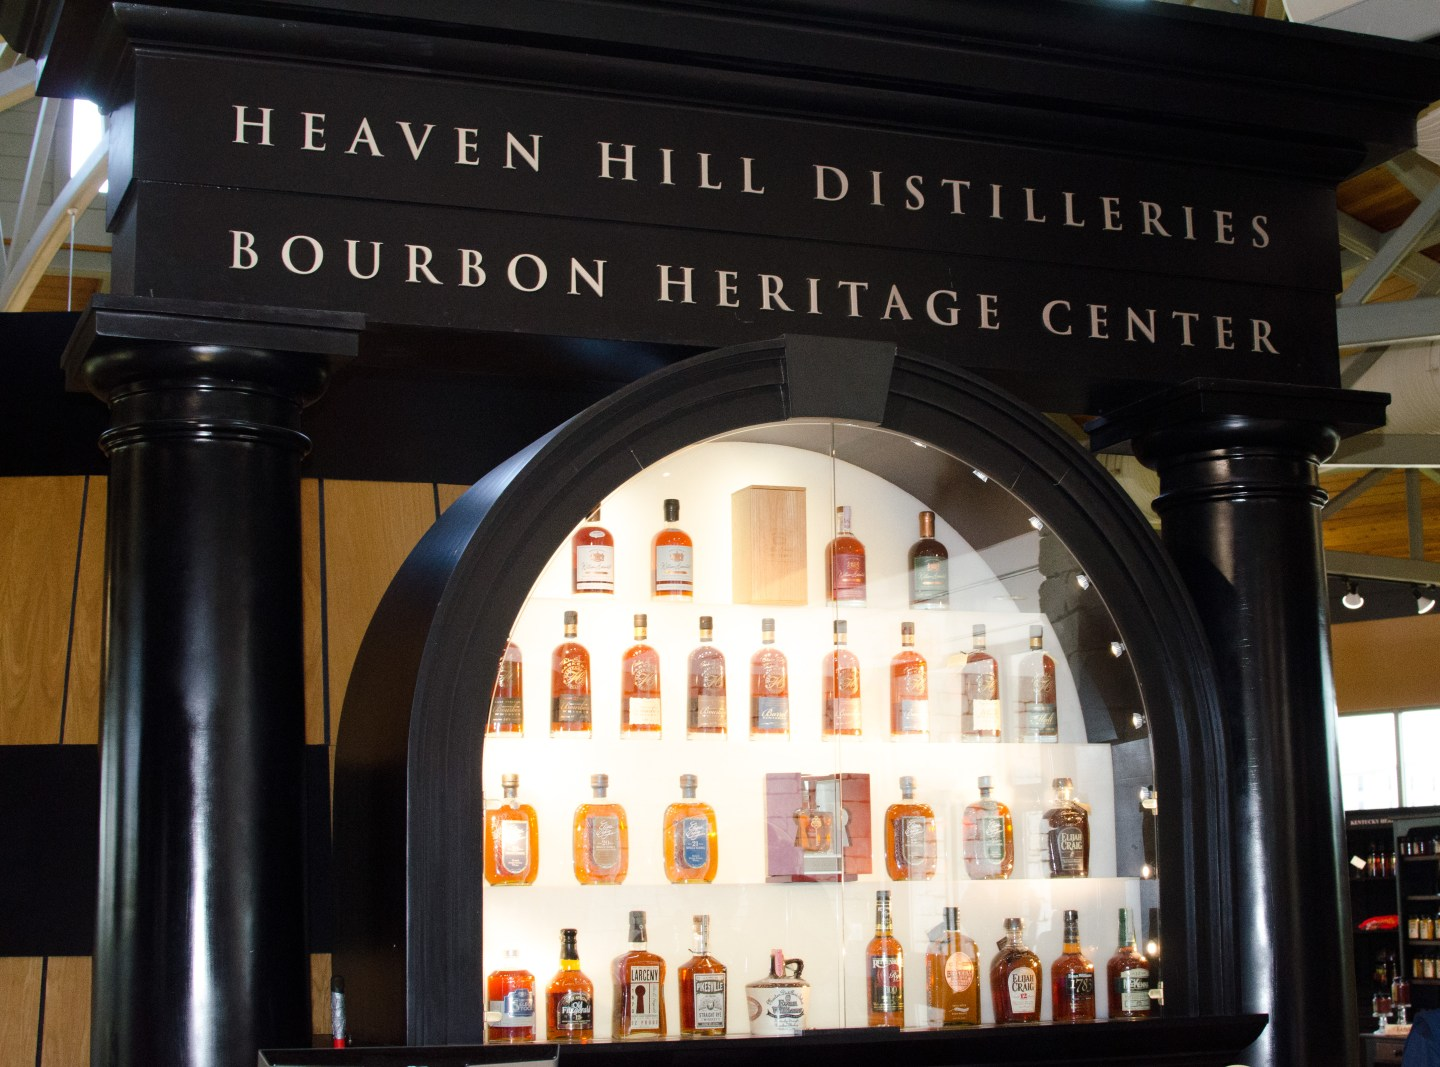 bourbonheritagecenter_heavenhill